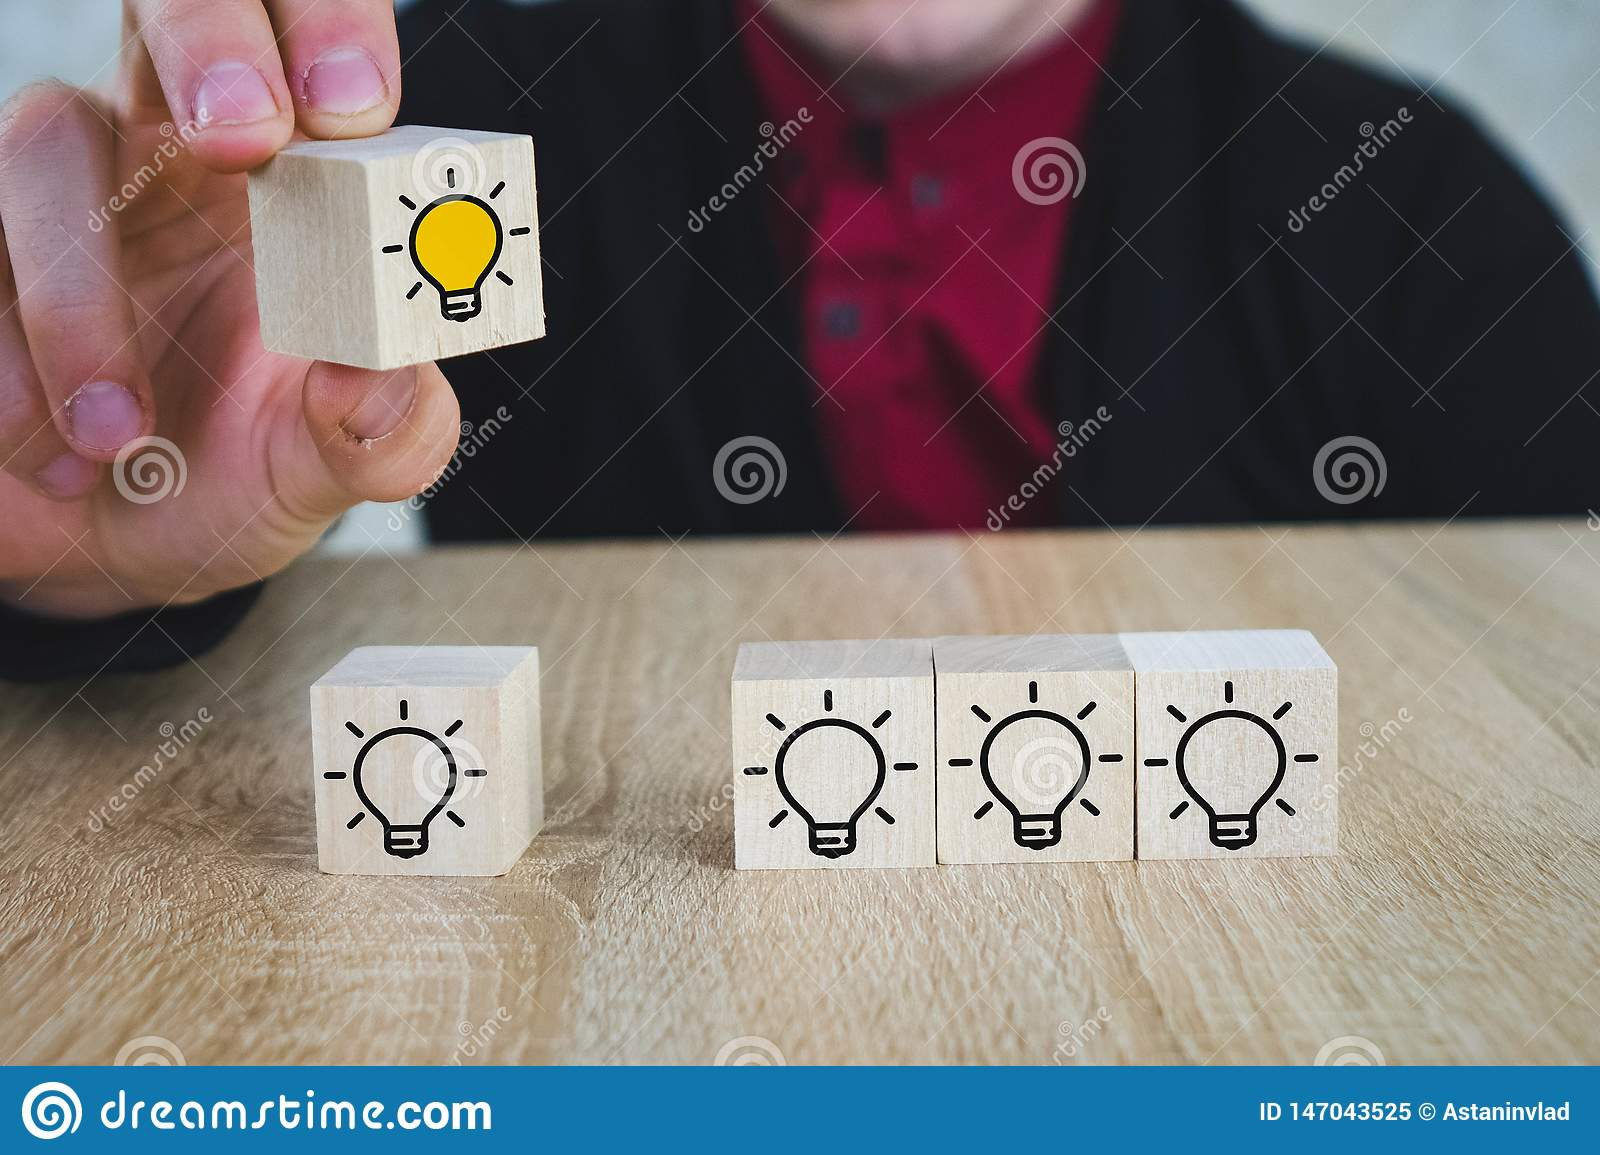 a hand holds a cube with a burning lamp when all the other lamps are extinguished, which symbolizes the New Idea, the concepts of